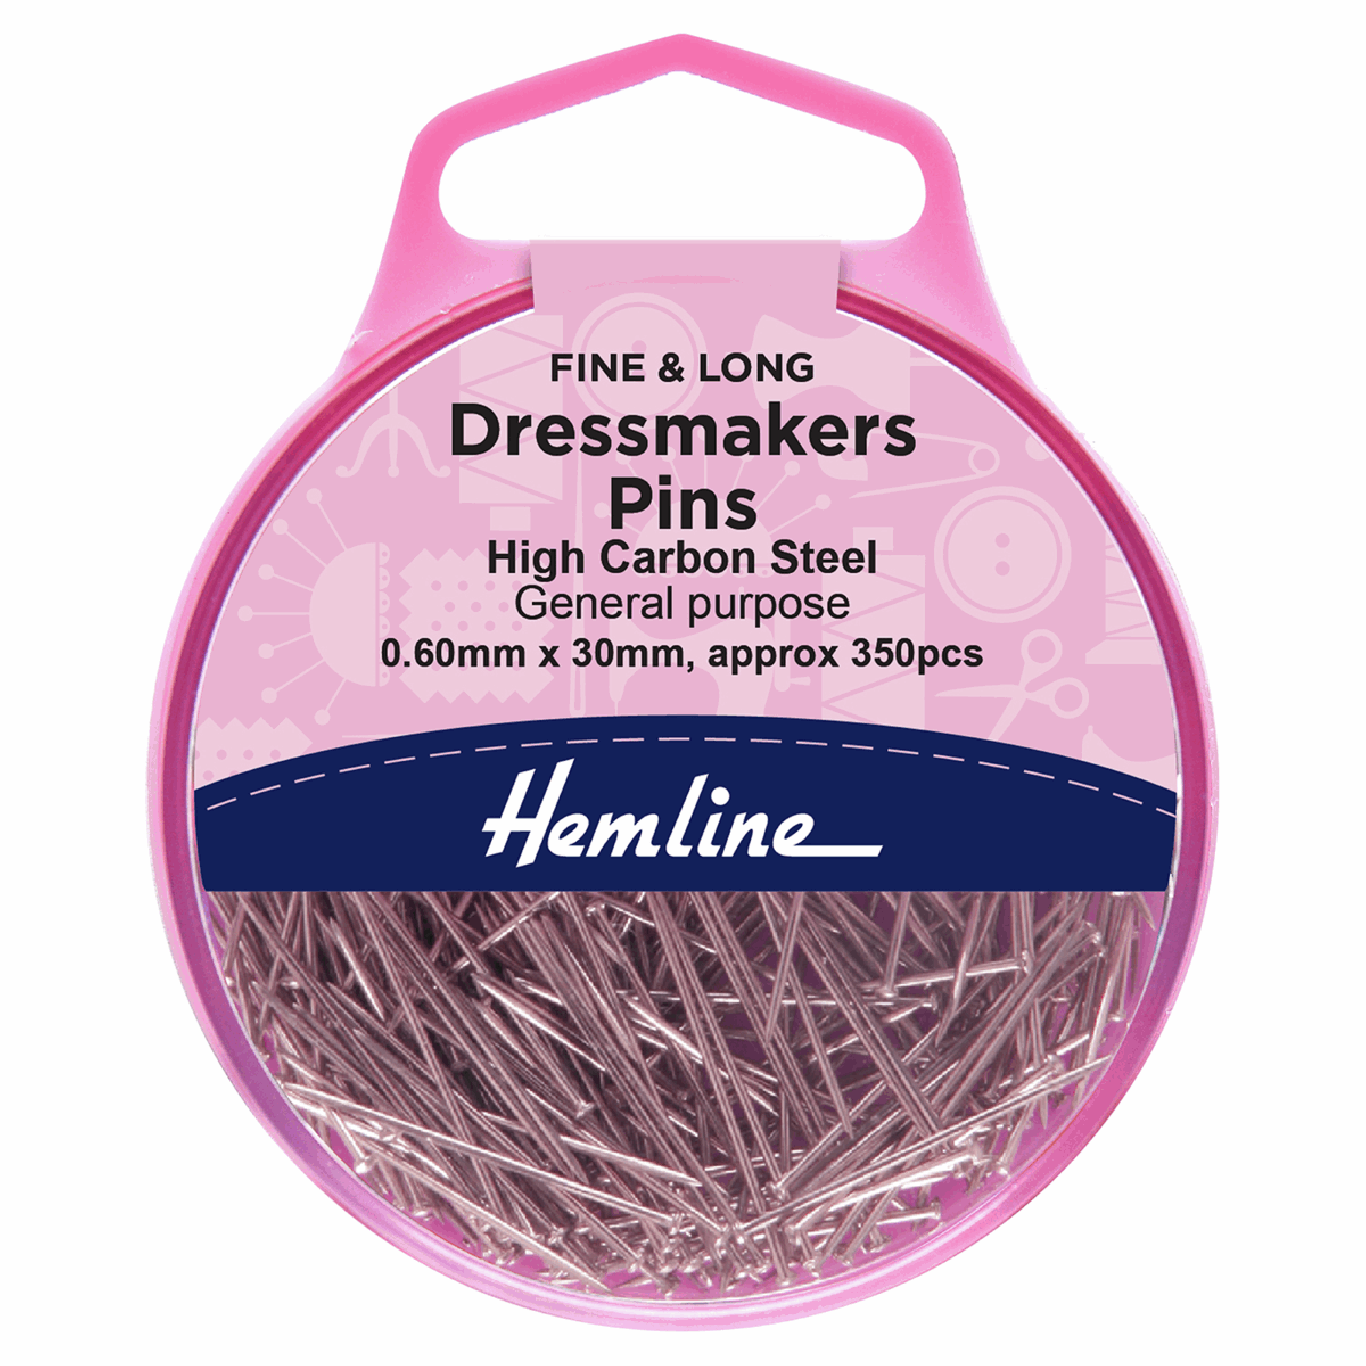 Image of Dressmaker's Pins | 30mm | 330 Pieces